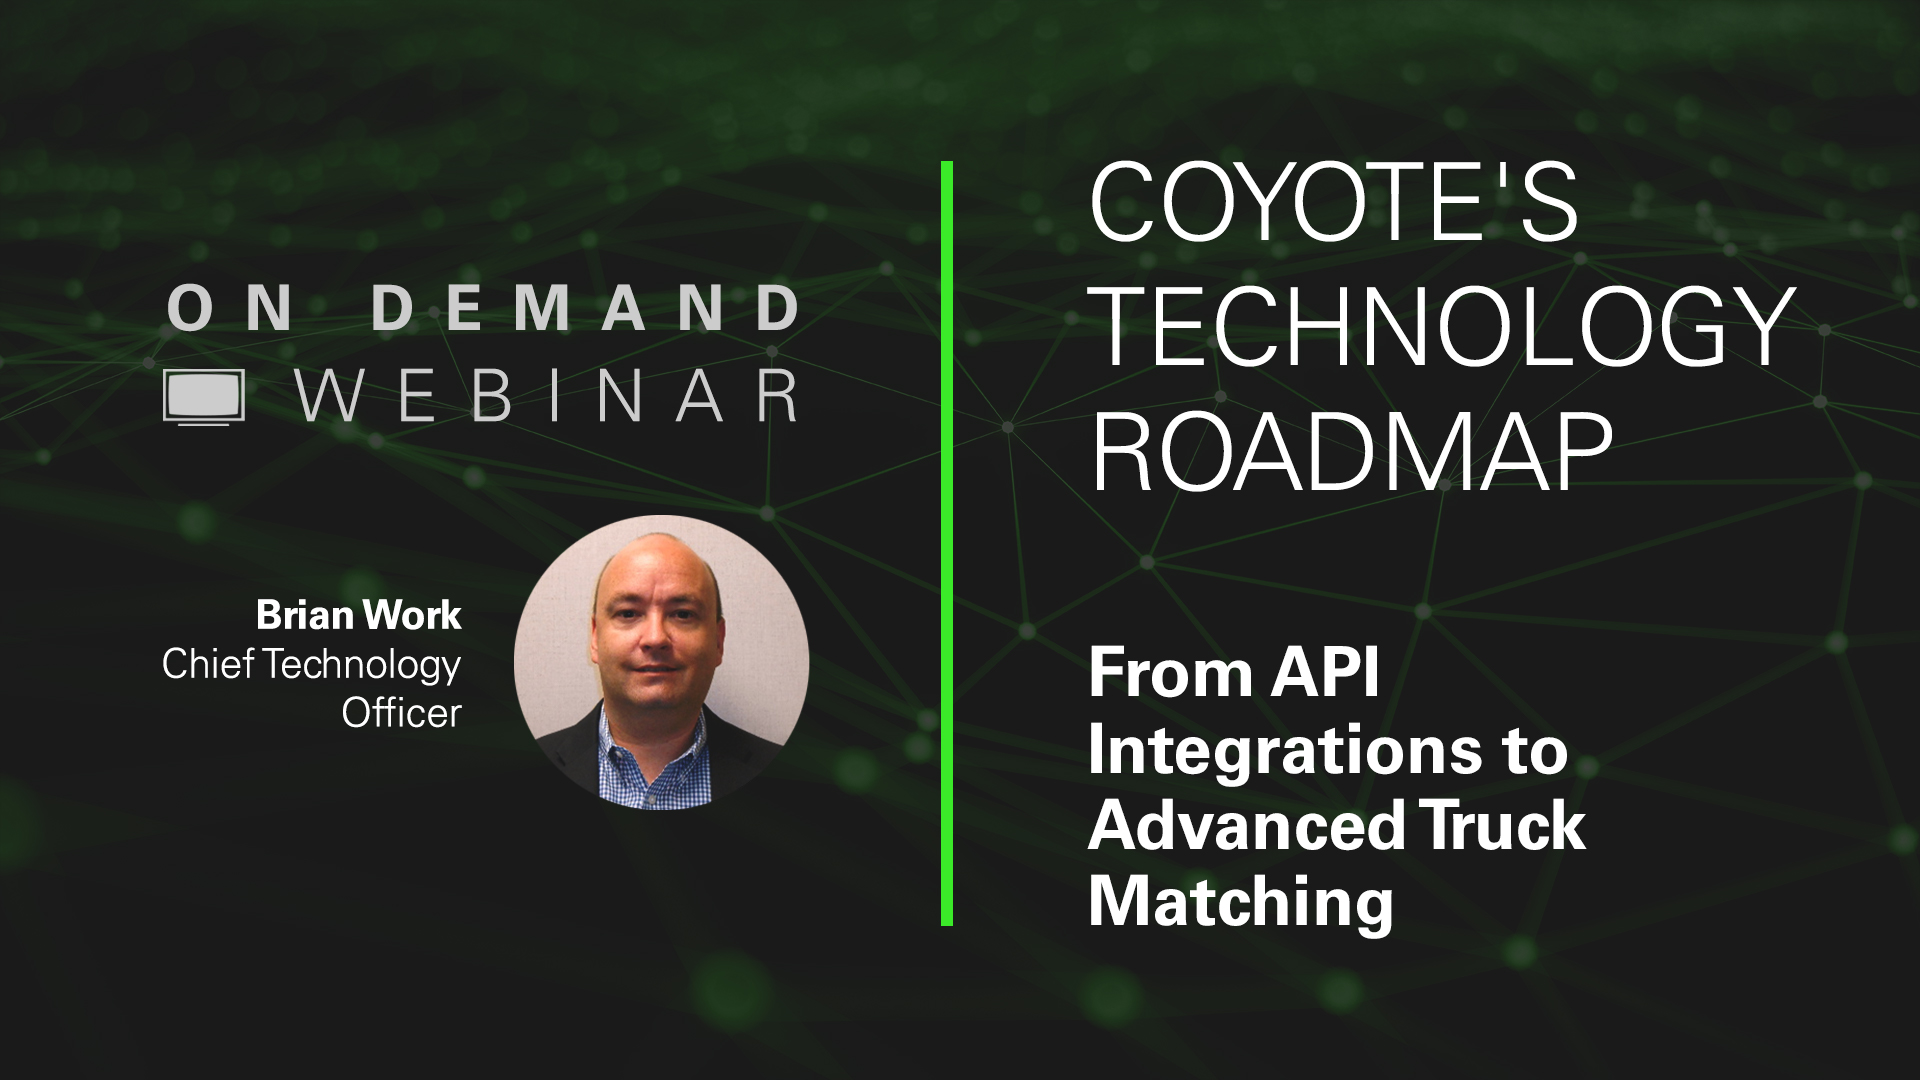 On Demand Webinar with Brian Work, Chief Technology Officer